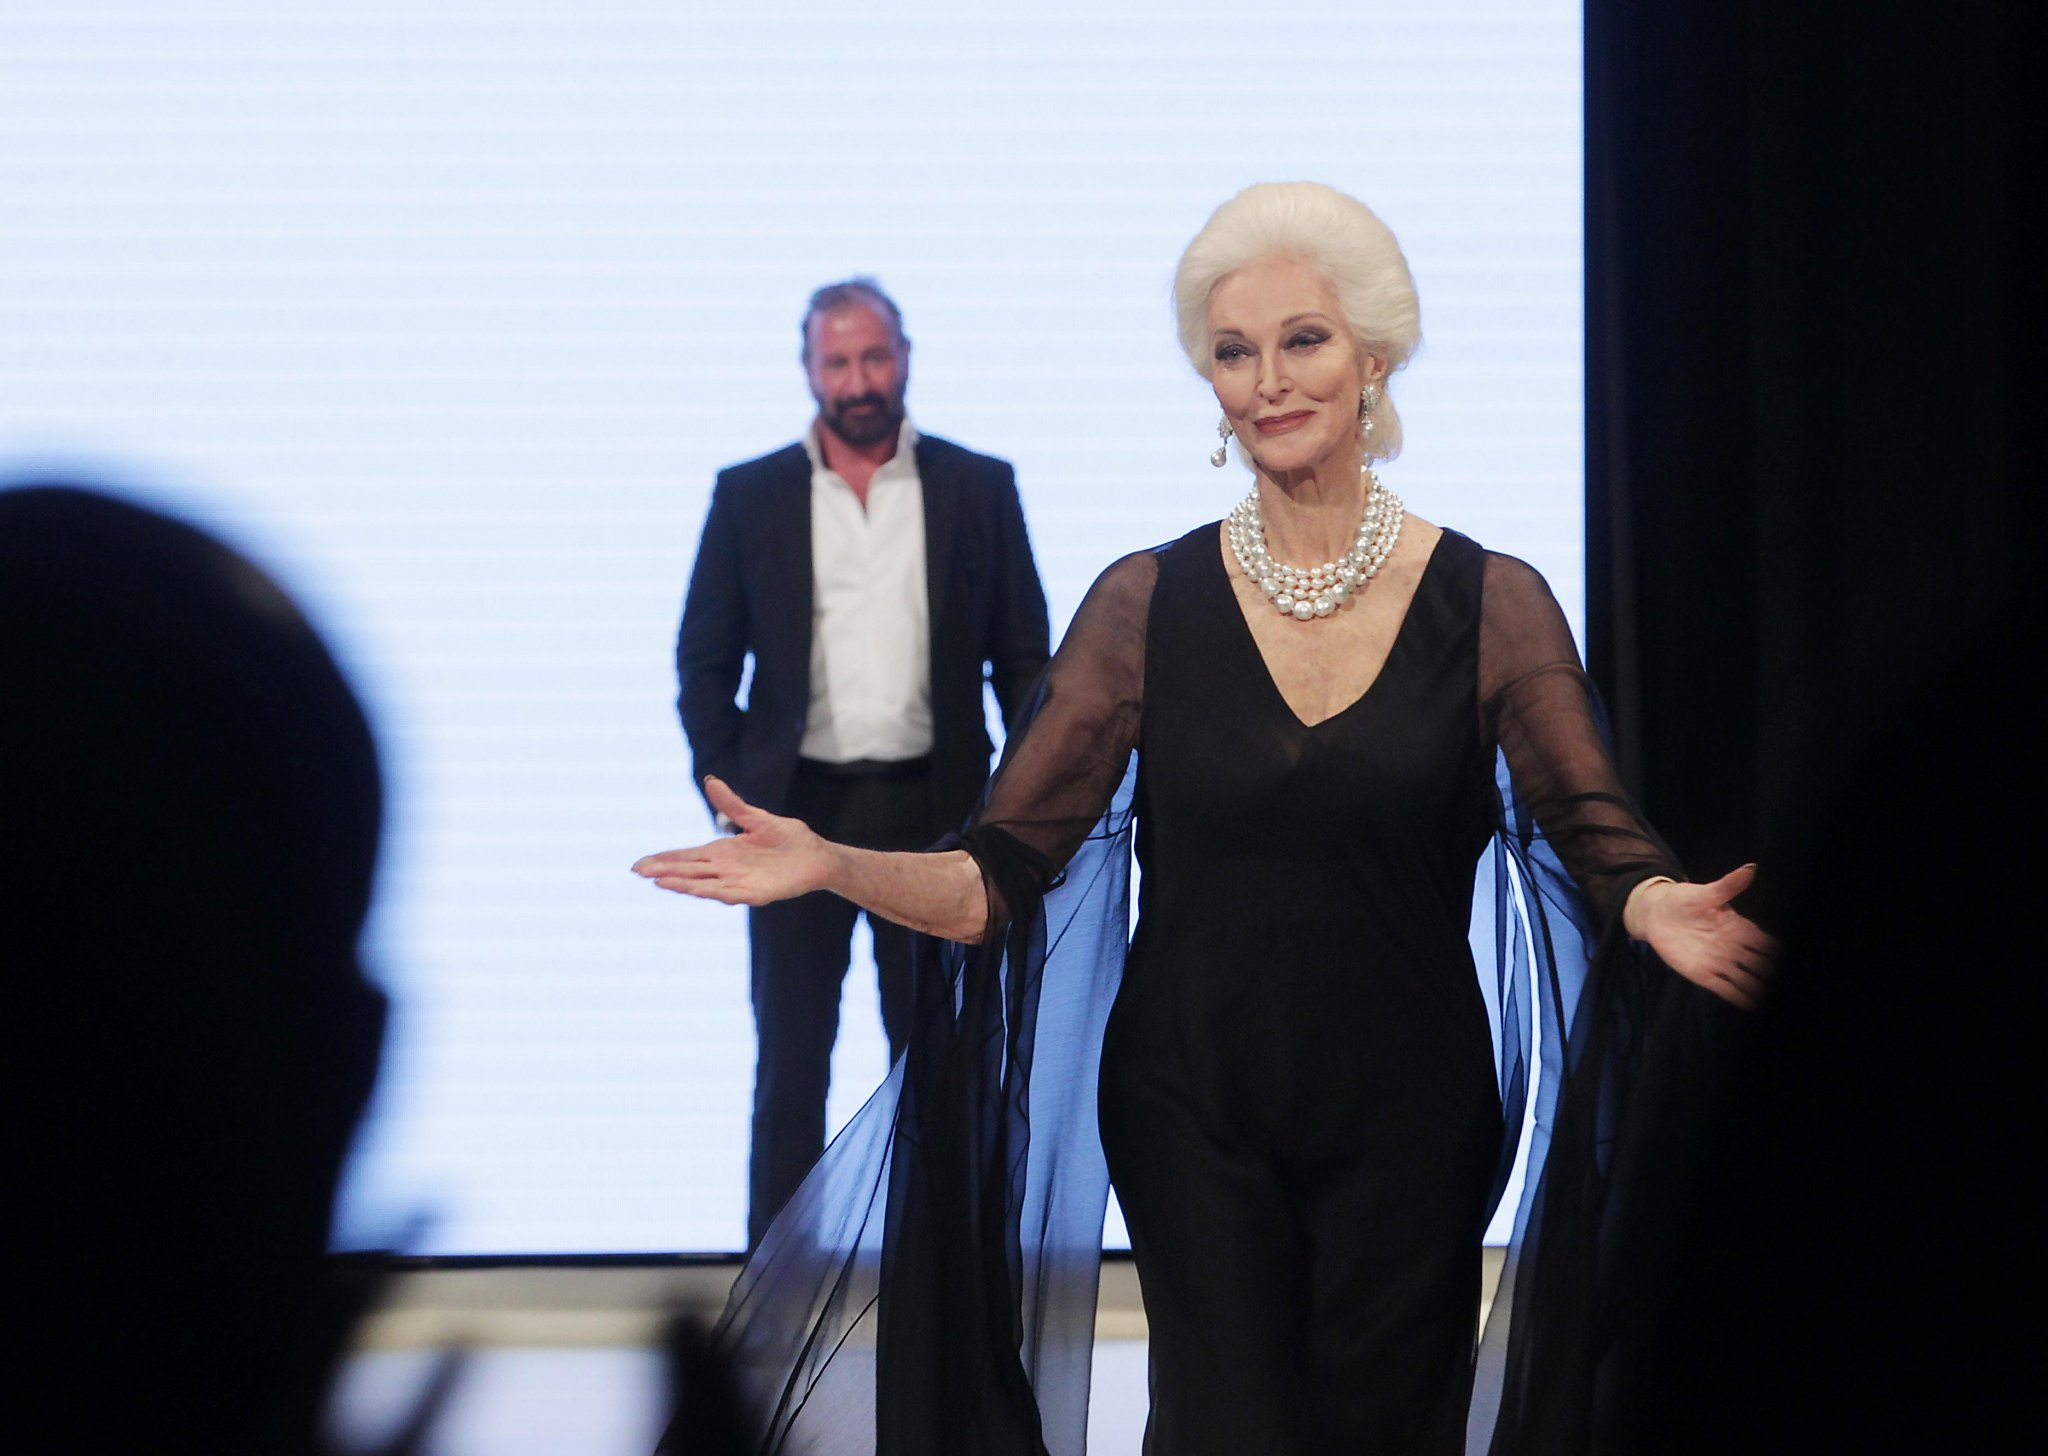 Women Over 60 Advancing In Fashion Industry